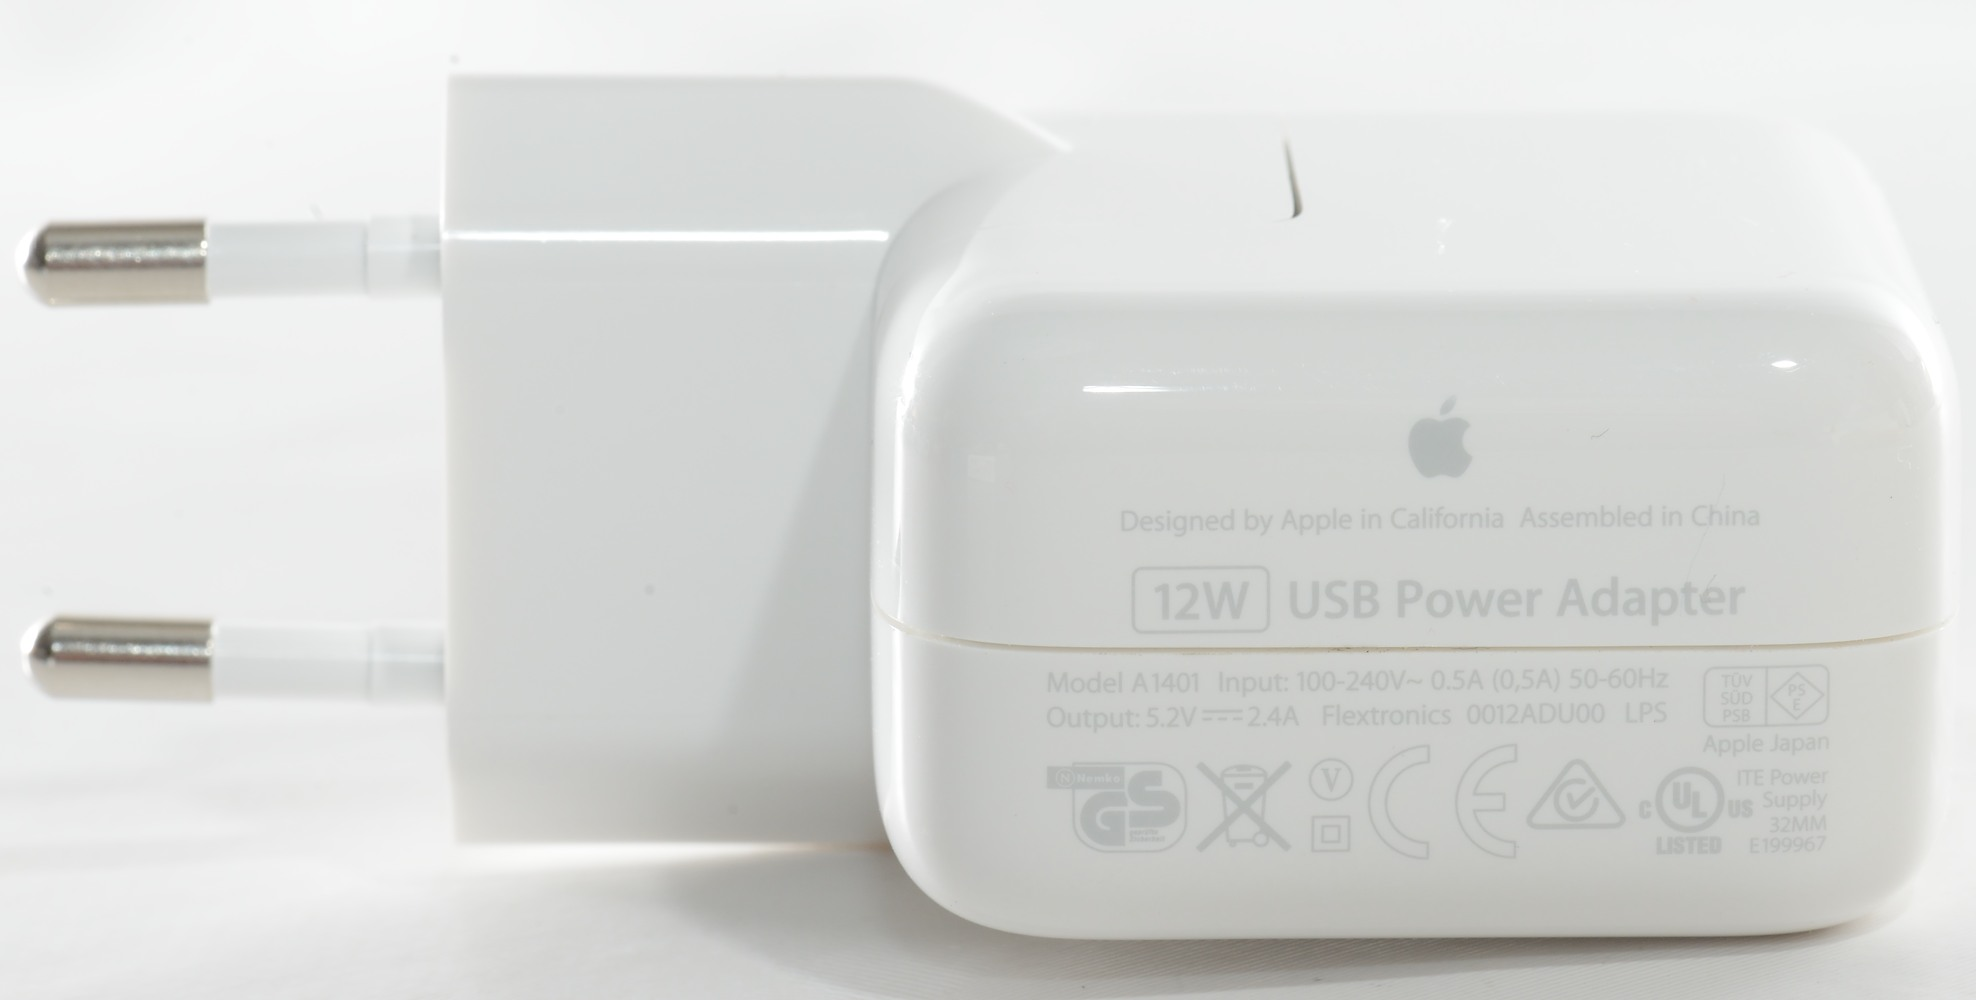 Test of apple 12w usb power adapter for Mac due the box